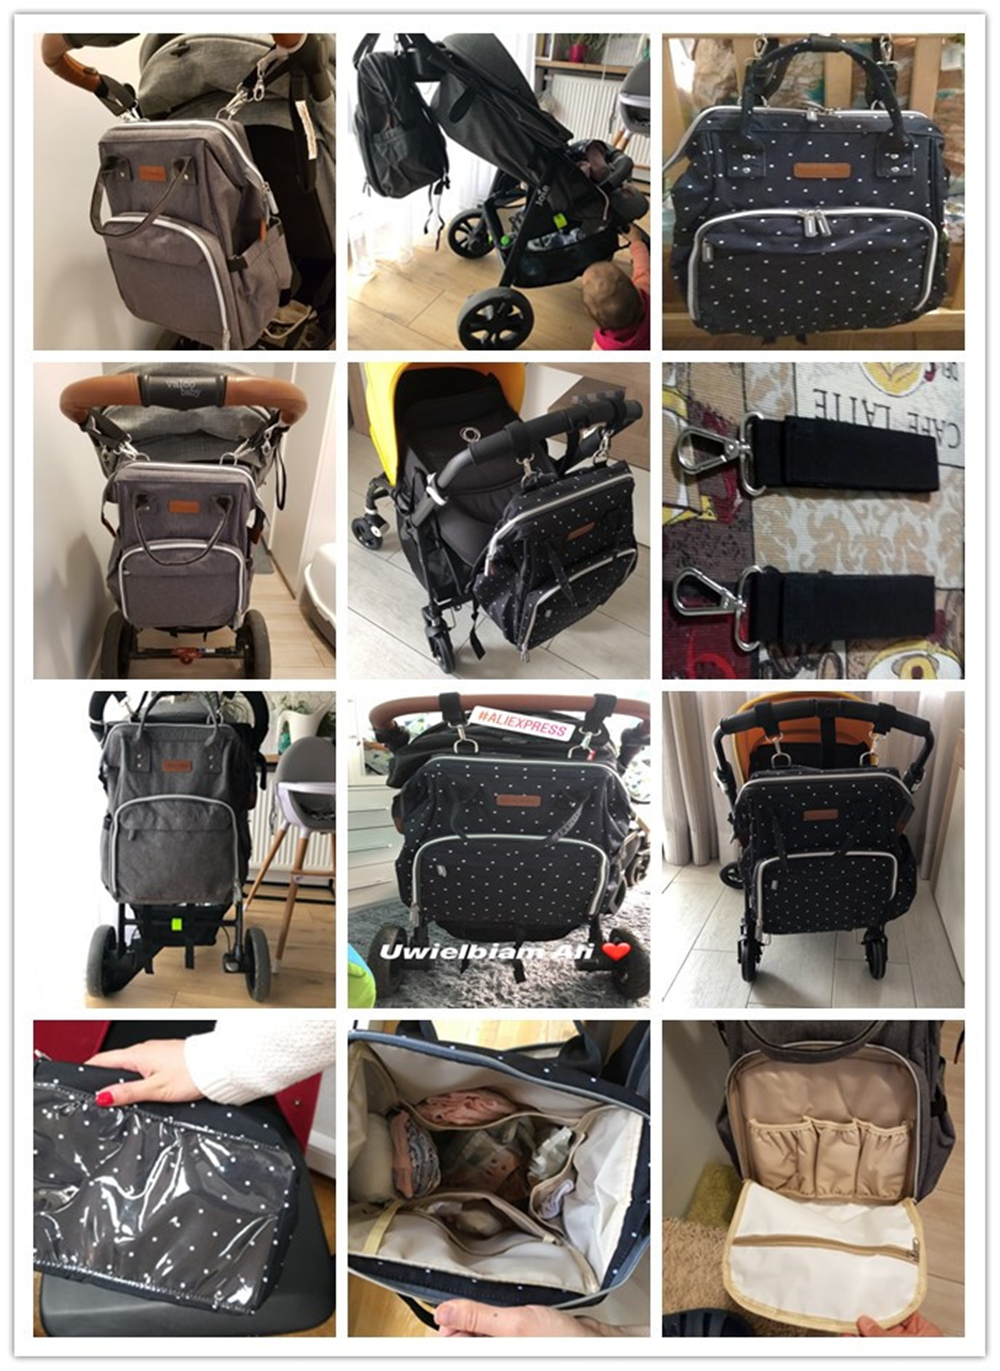 HTB1W3G8cl1D3KVjSZFyq6zuFpXai 23 Colors Fashion Mummy Maternity Nappy Bag Large Capacity Baby Diaper Bag Travel Backpack Designer Nursing Bag for Baby Care